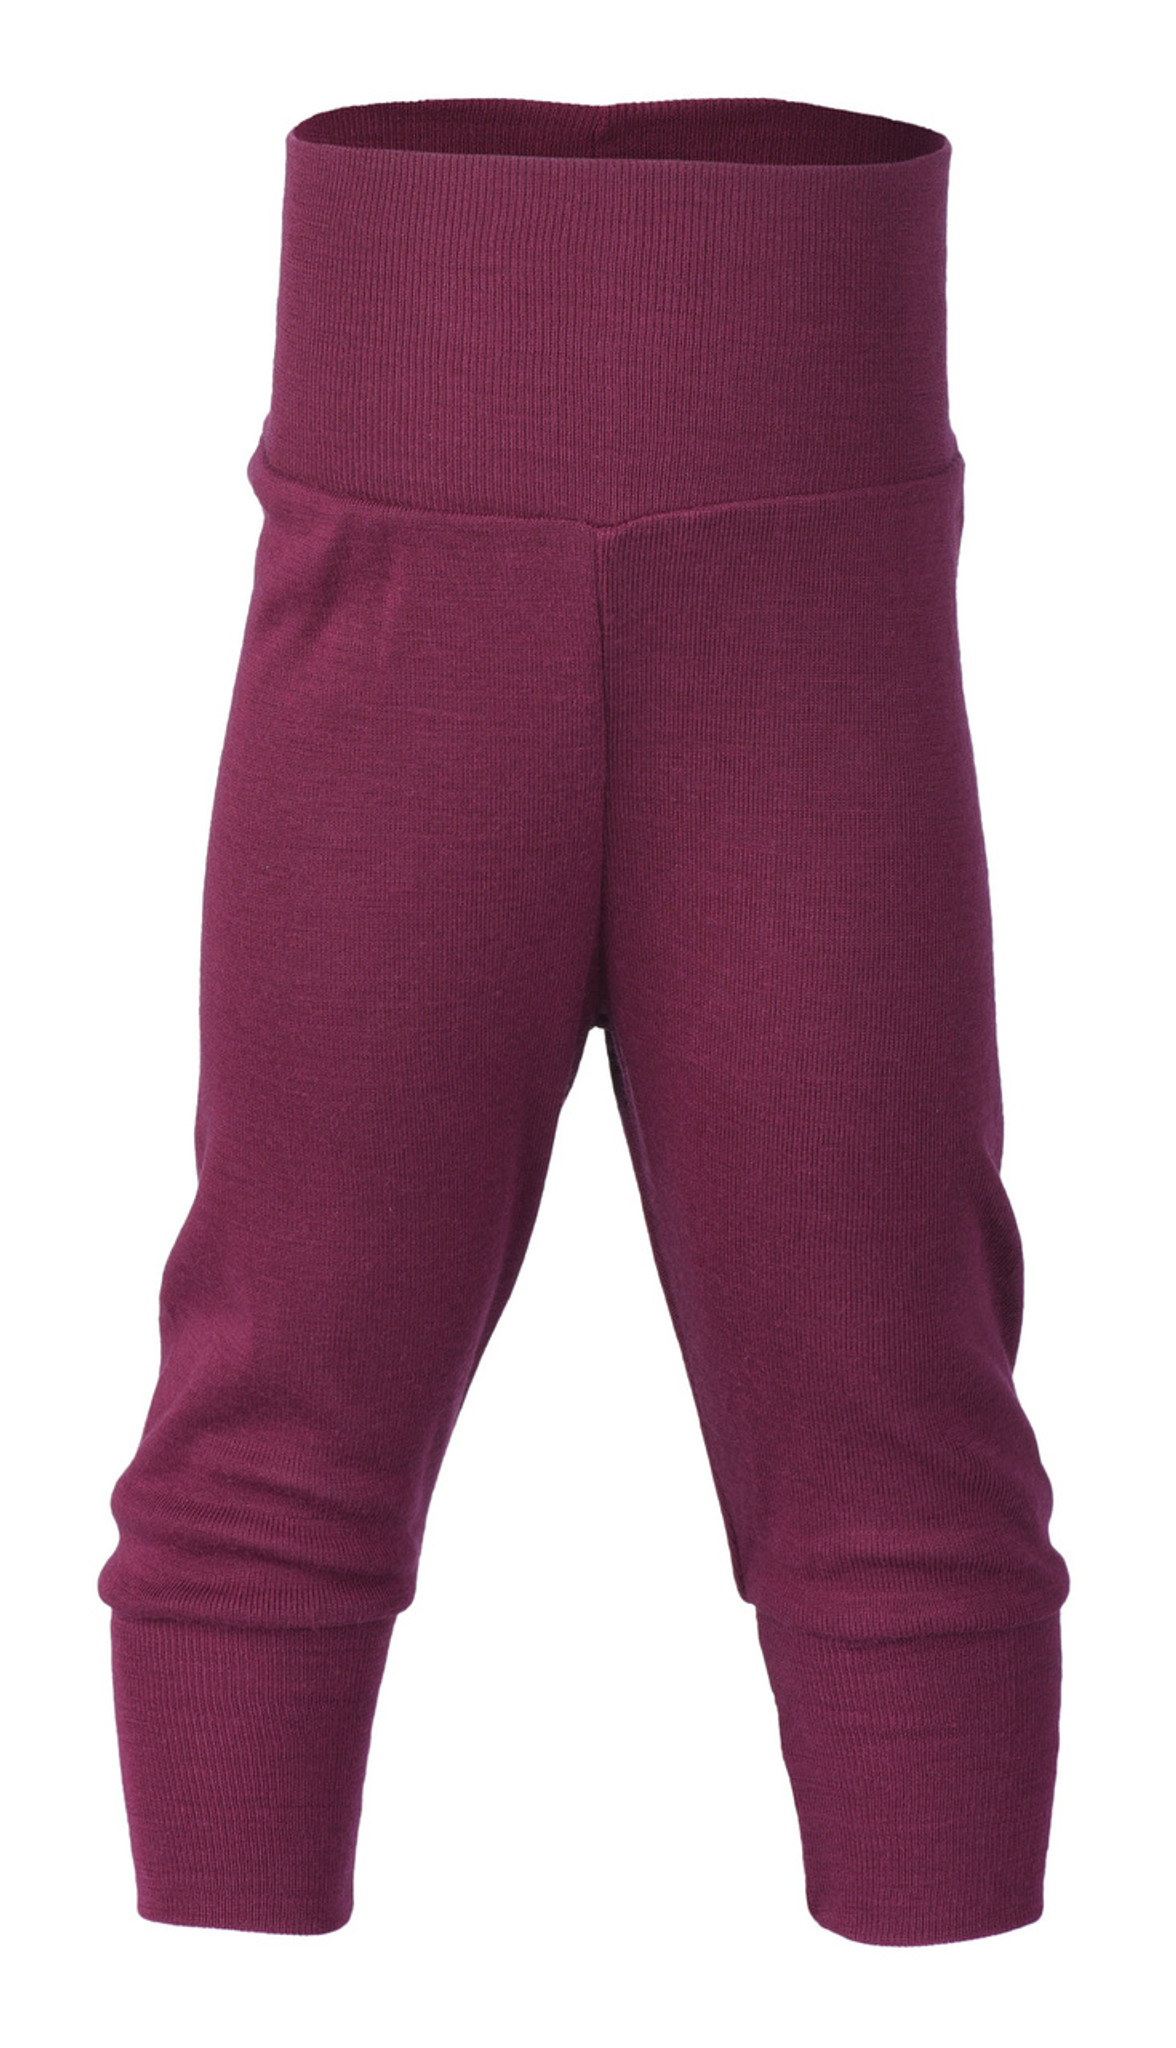 acf9e63ca9bd Engel Merino Wool Silk Baby Pants Orchid - Merino Wool Clothes for ...